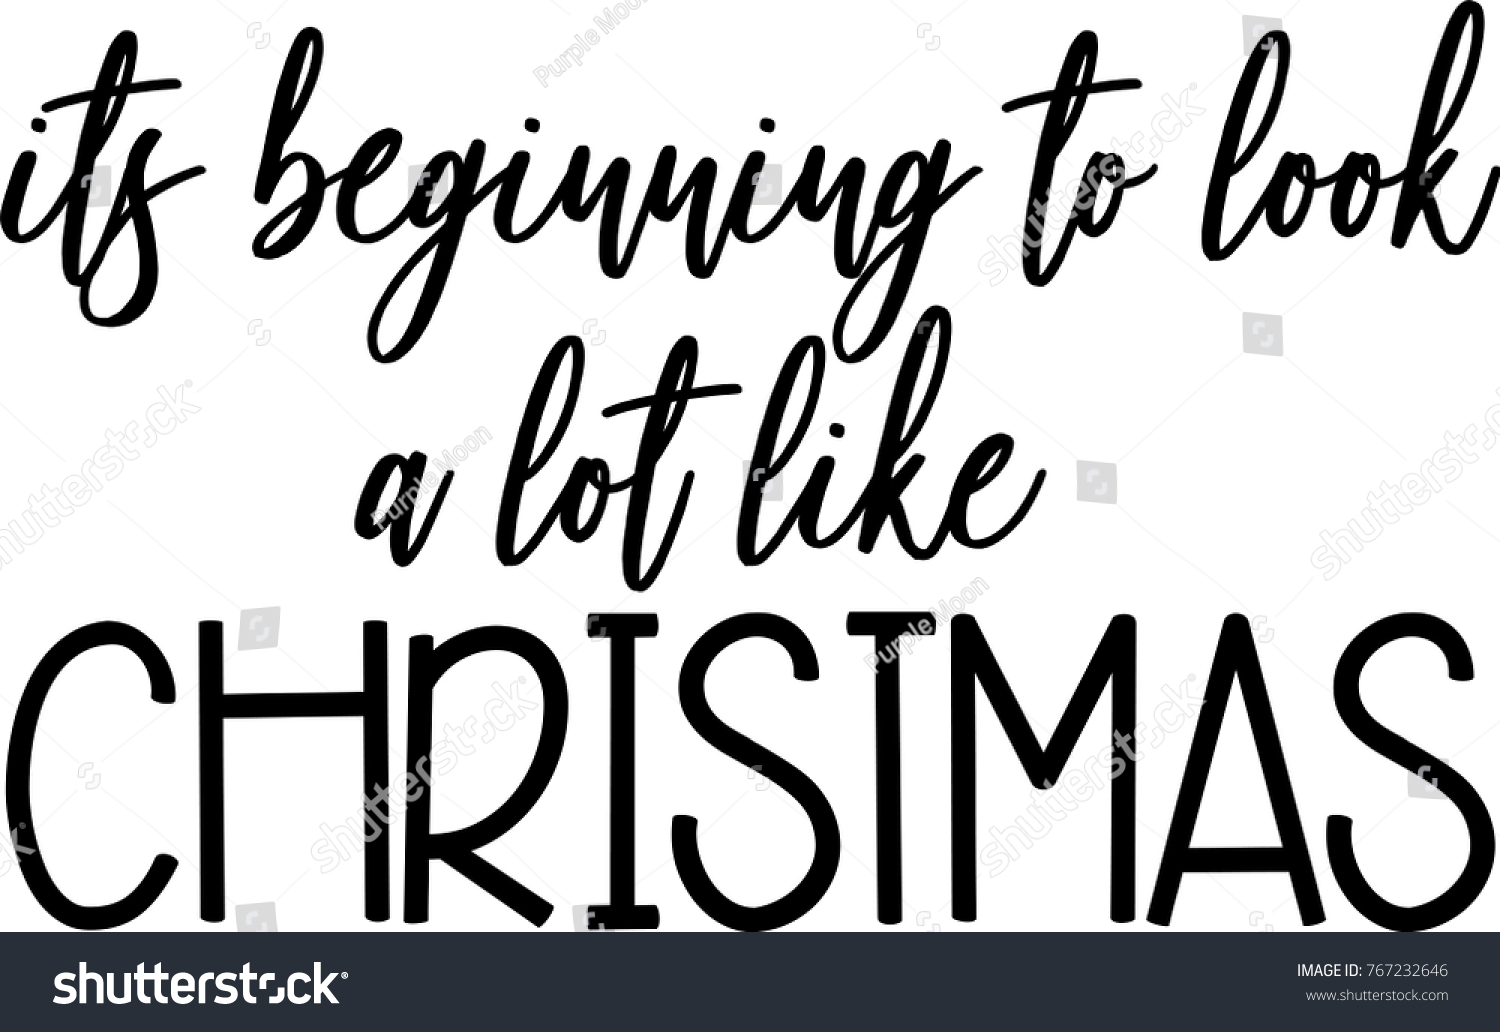 Beginning Look Like Christmas Greeting Vector Stock Vector (Royalty ...